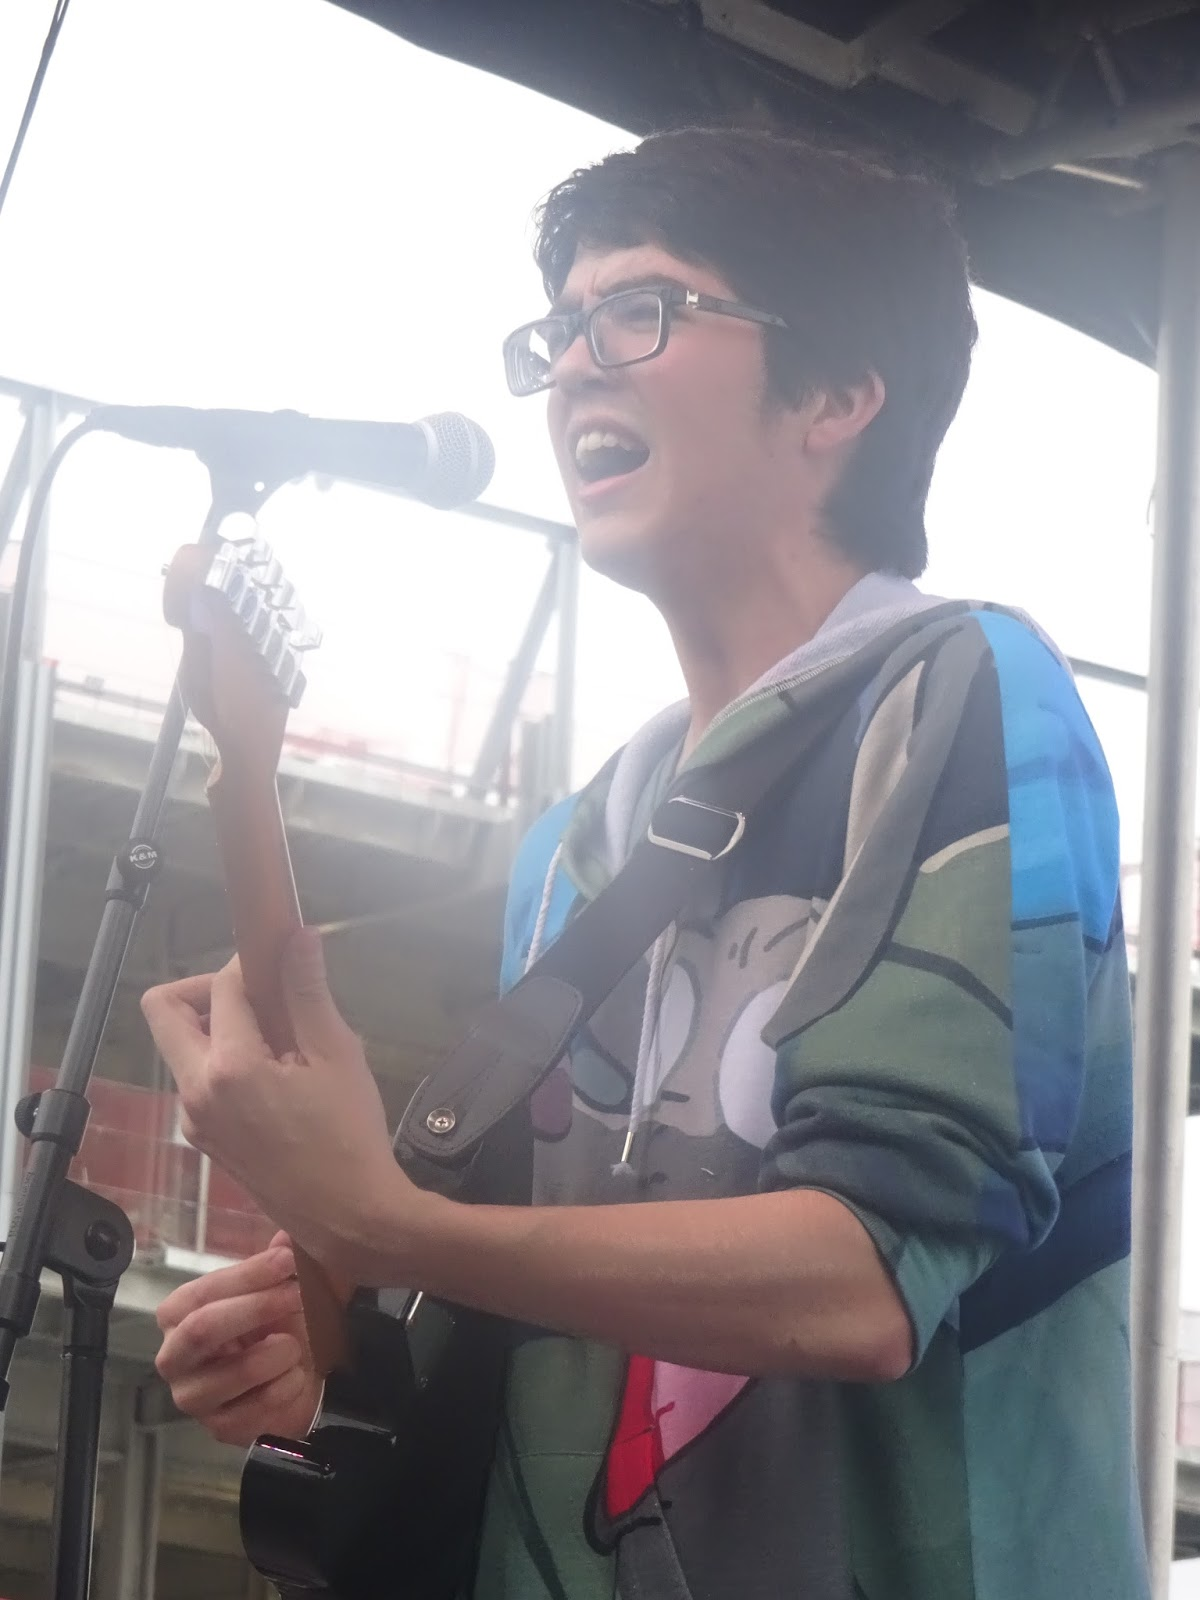 Car Seat Headrest Is Originally From Leesburg Virginia But Currently Based Out Of Seattle Washington Led By Vocalist Guitarist Will Toledo